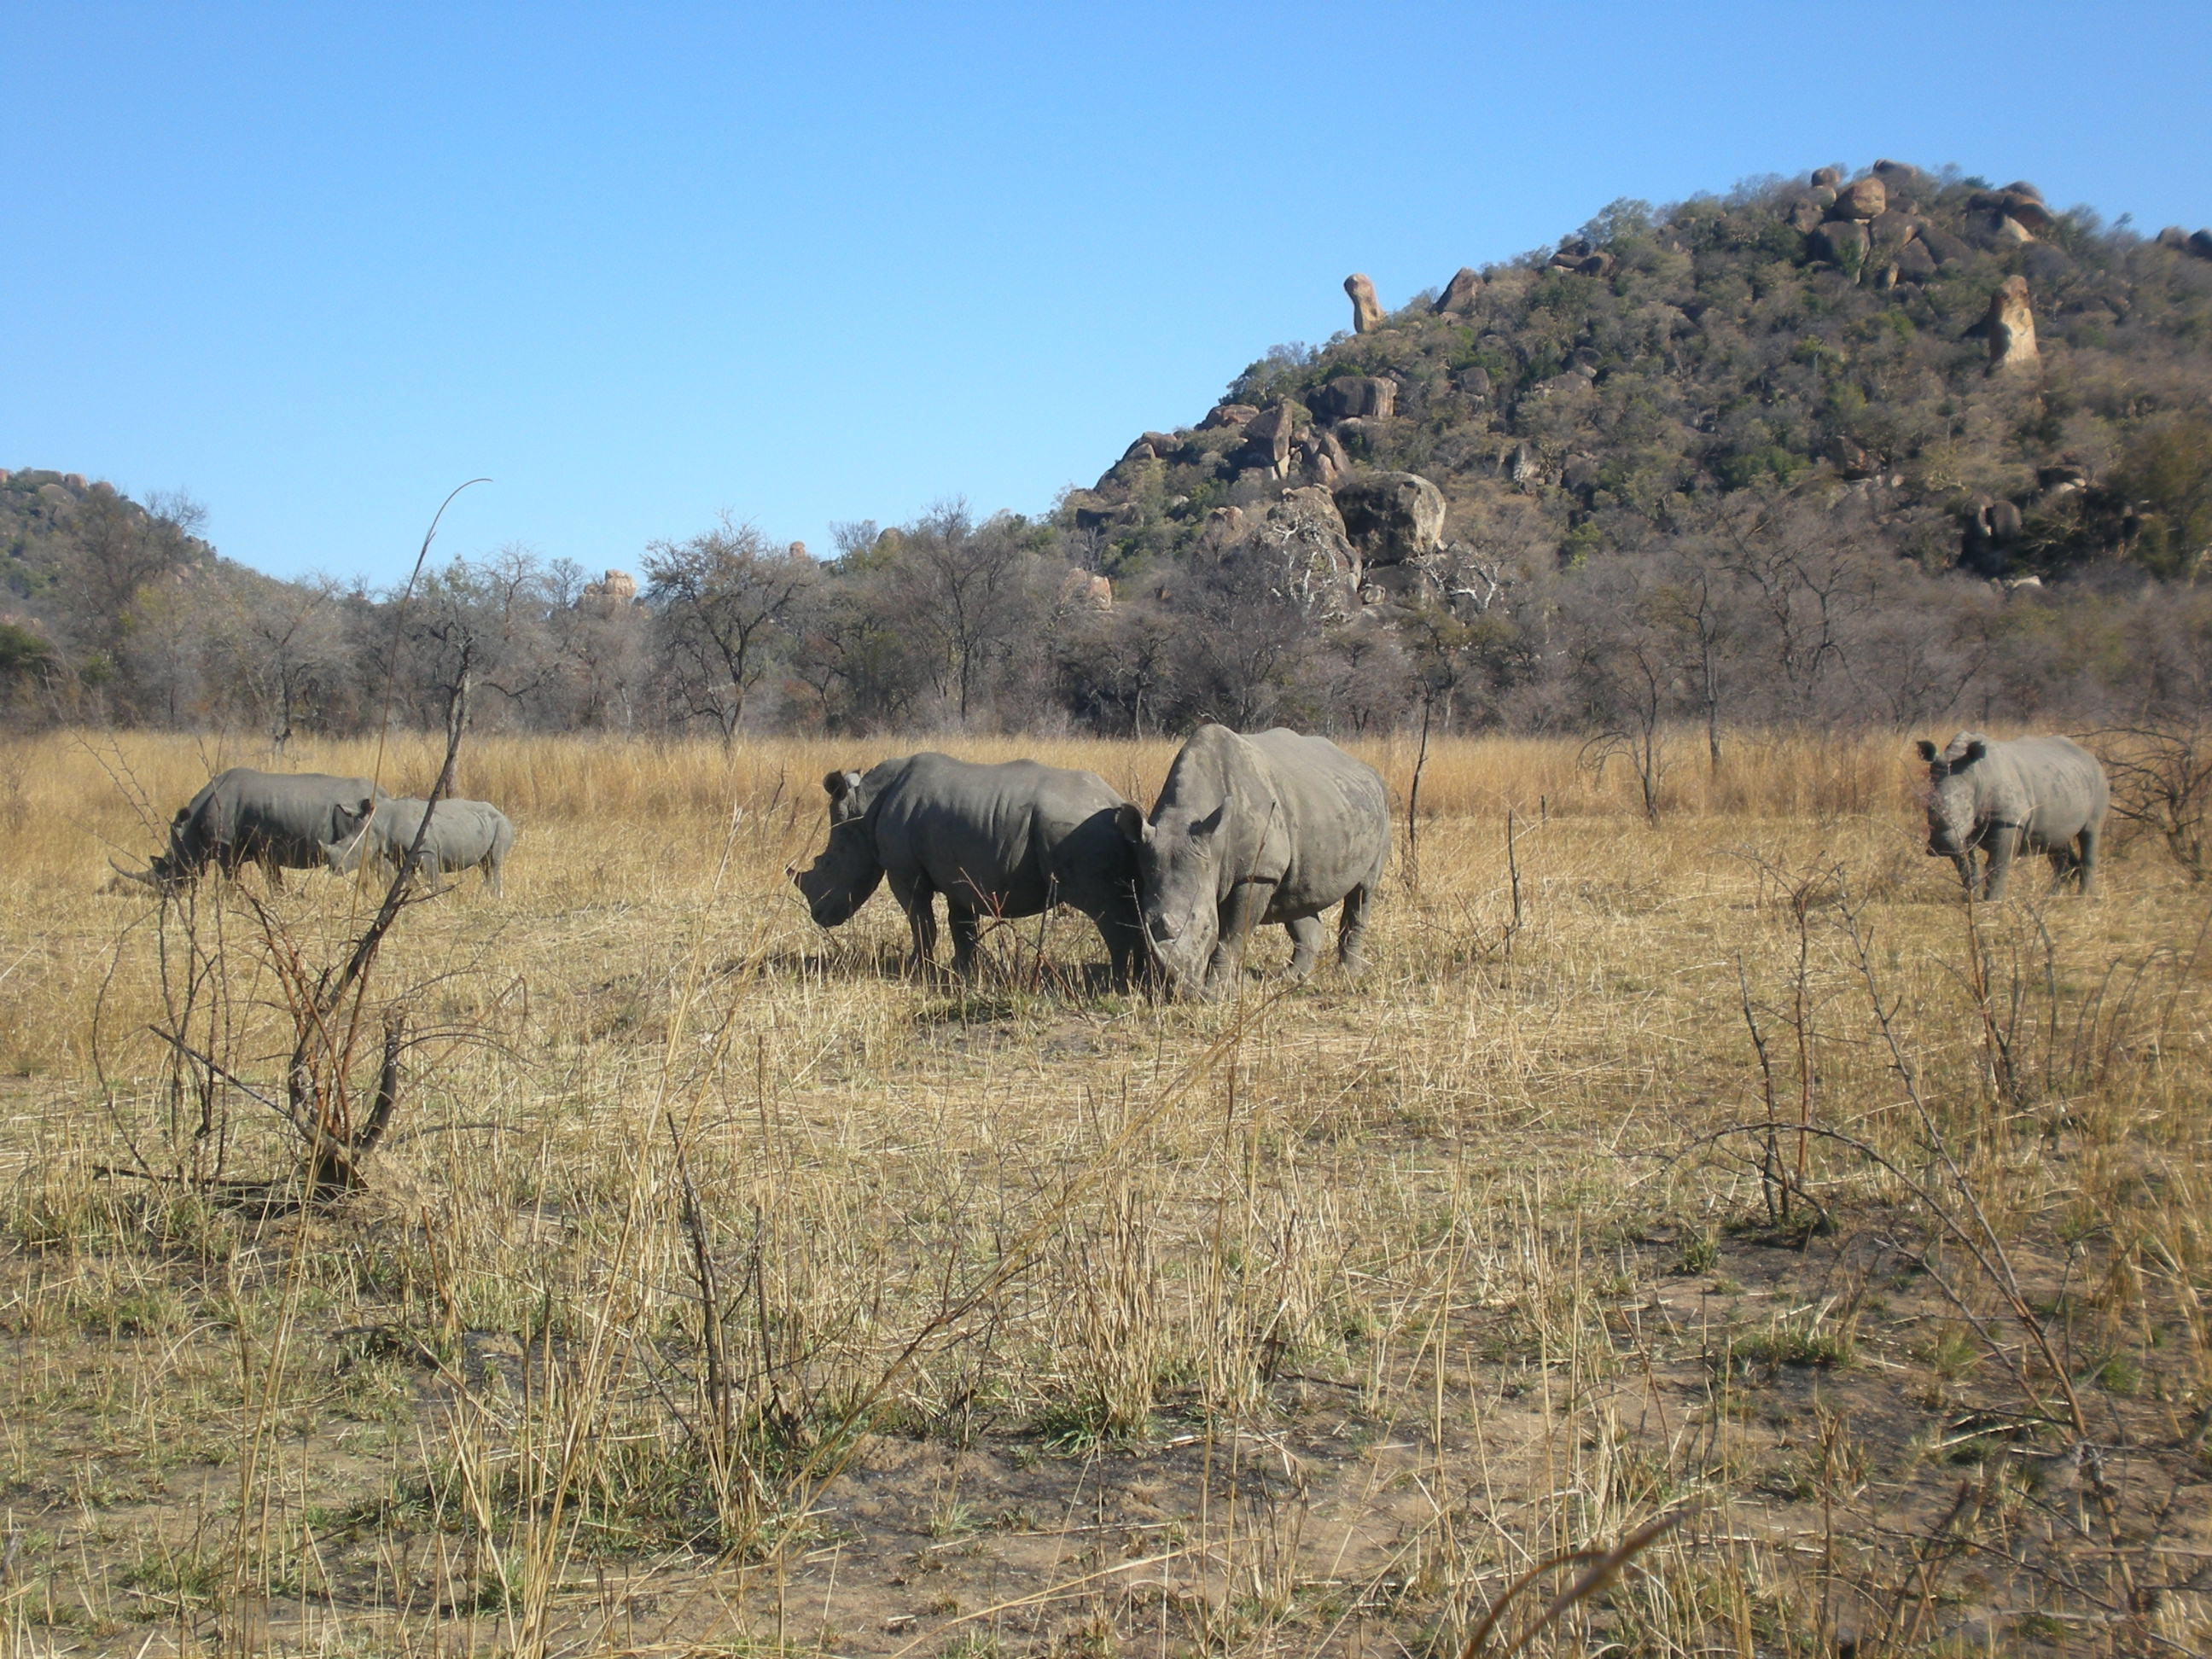 Rhino Trekking in Zimbabwe: An Incredible Experience